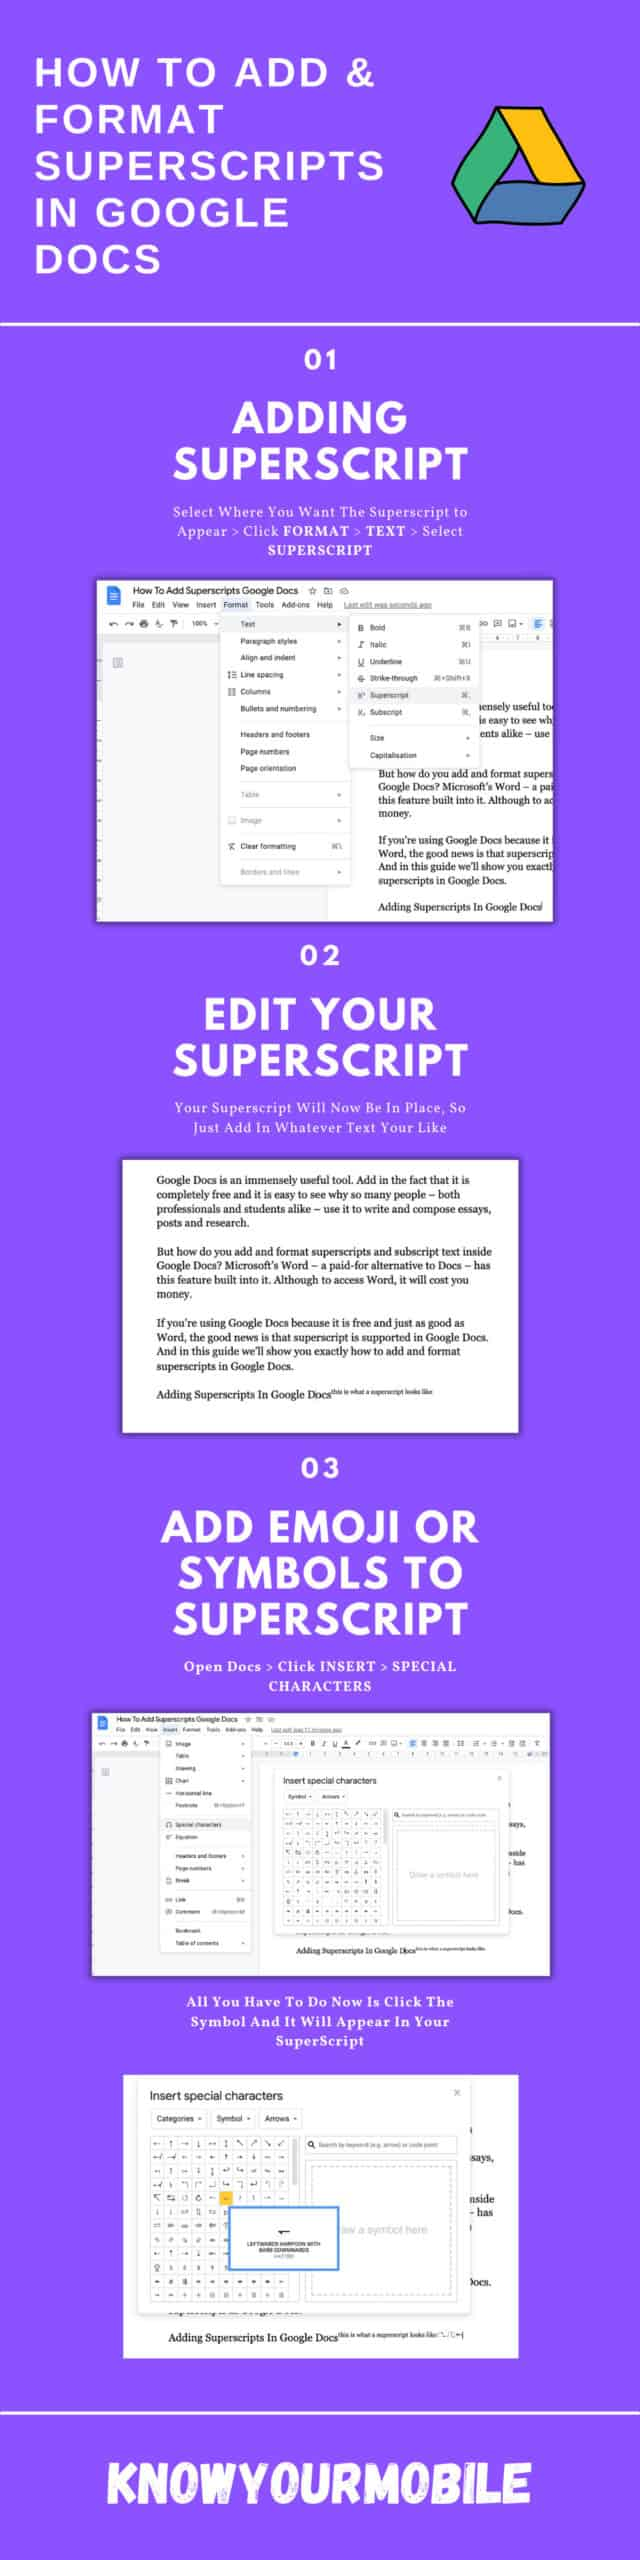 How To Add & Format Superscript In Google Docs